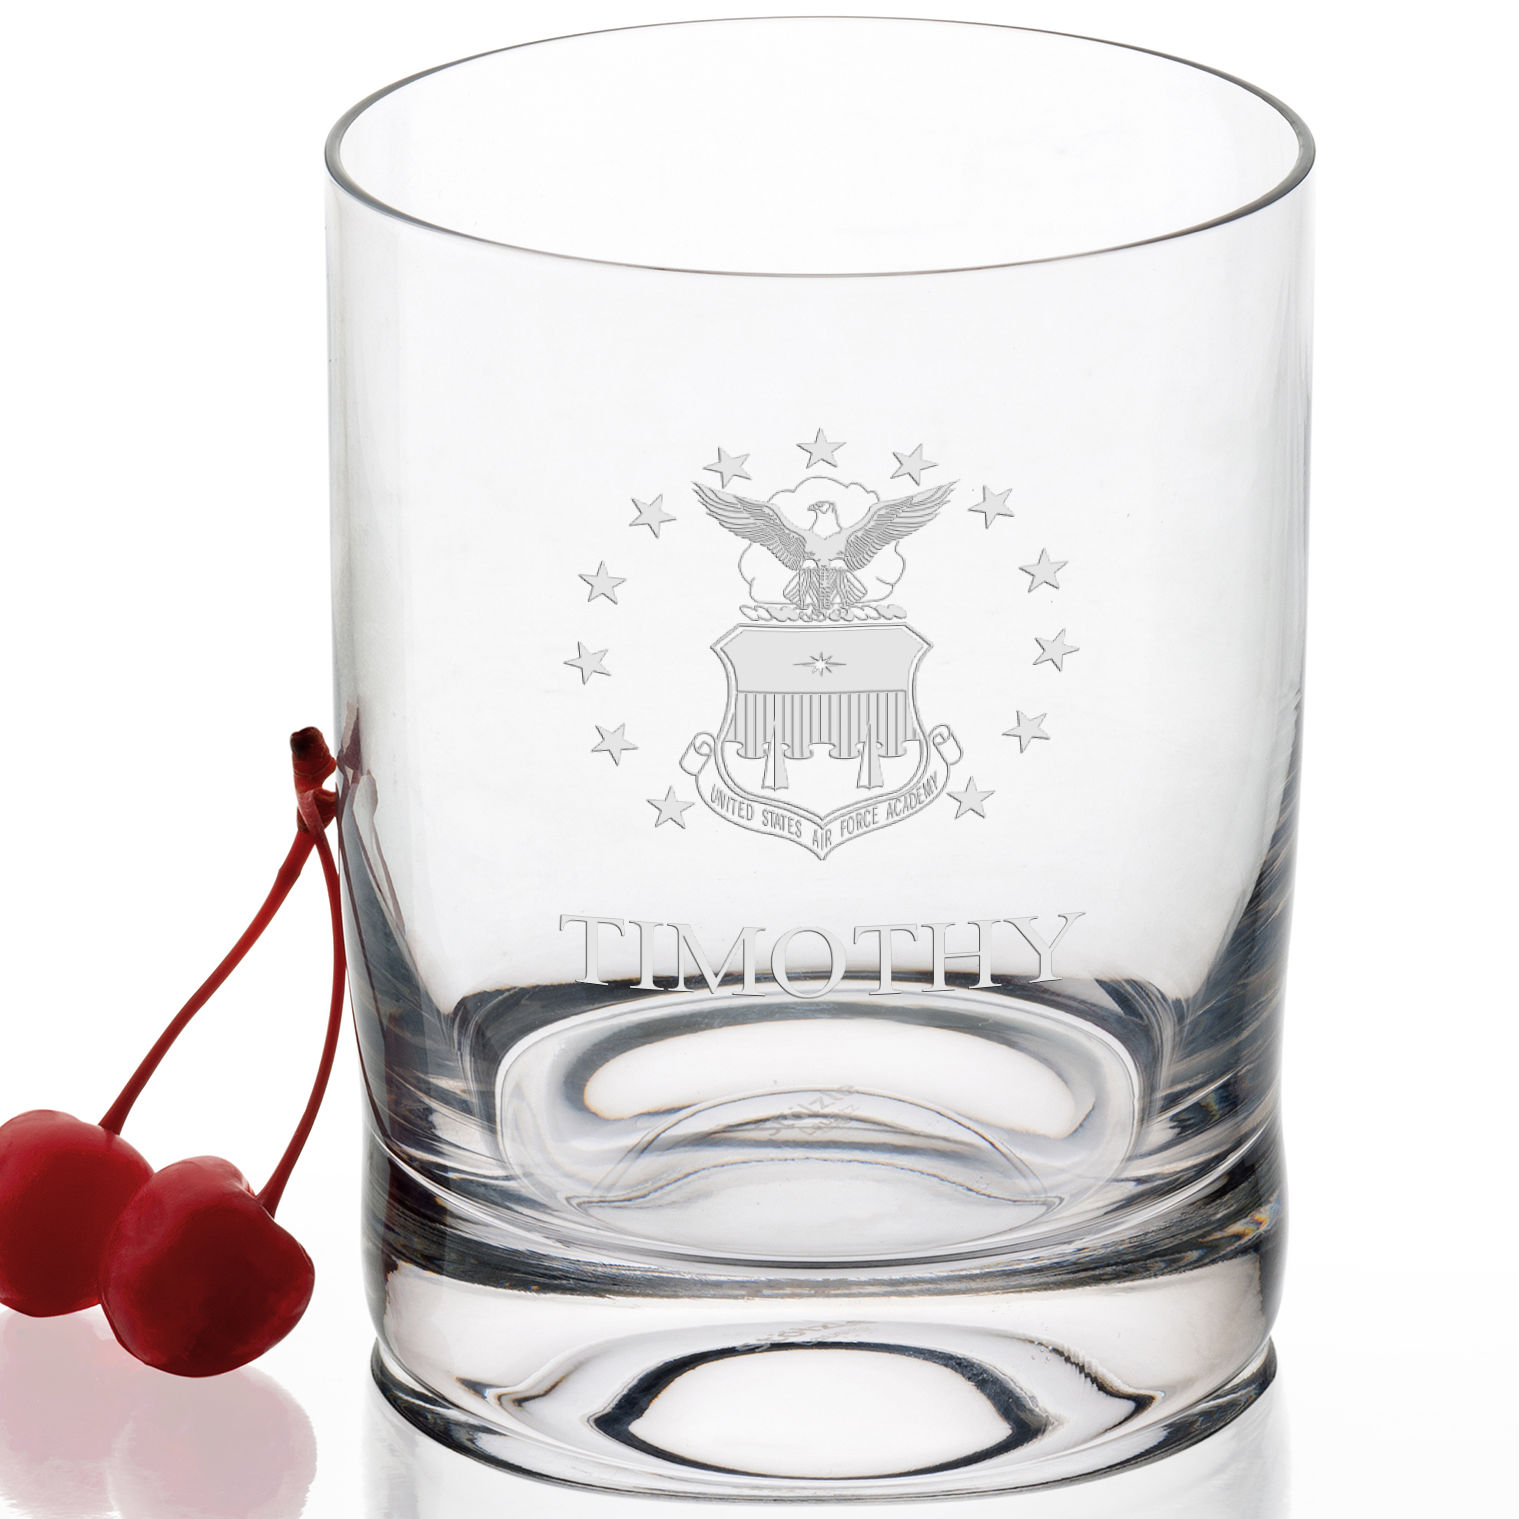 US Air Force Academy Tumbler Glasses - Set of 4 - Image 2